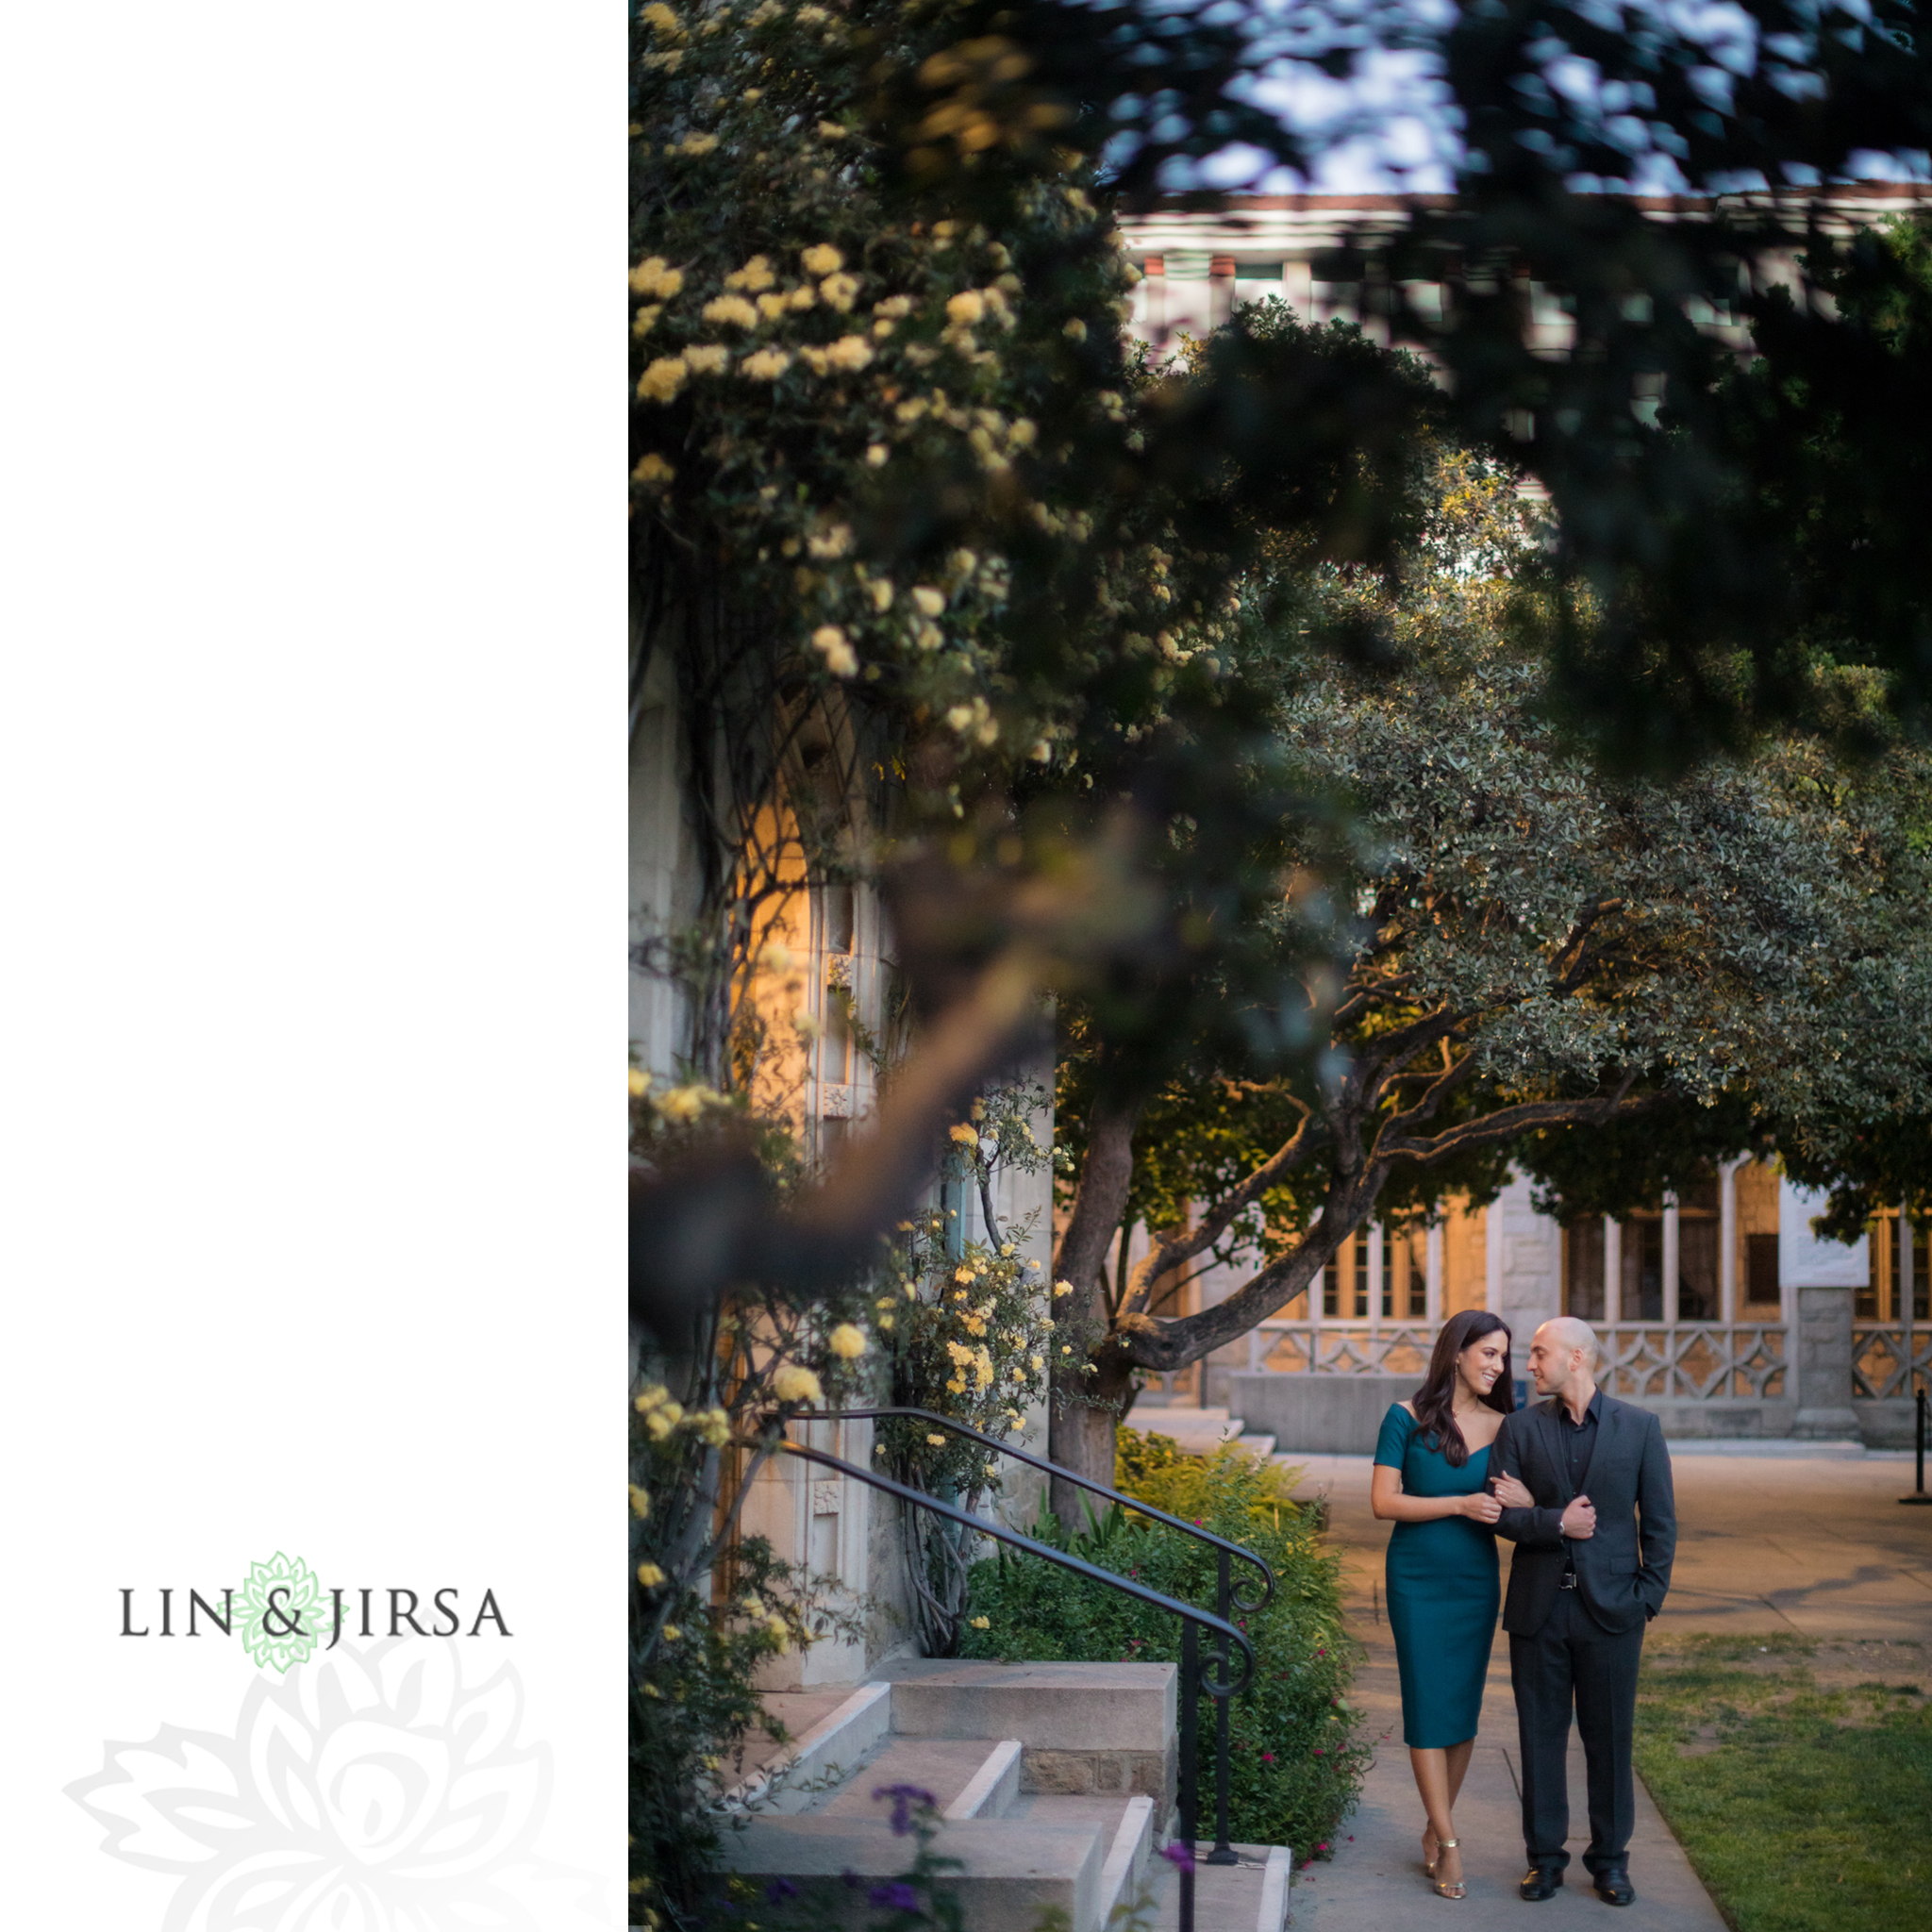 17-Los-angeles-arboretum-engagement-photography